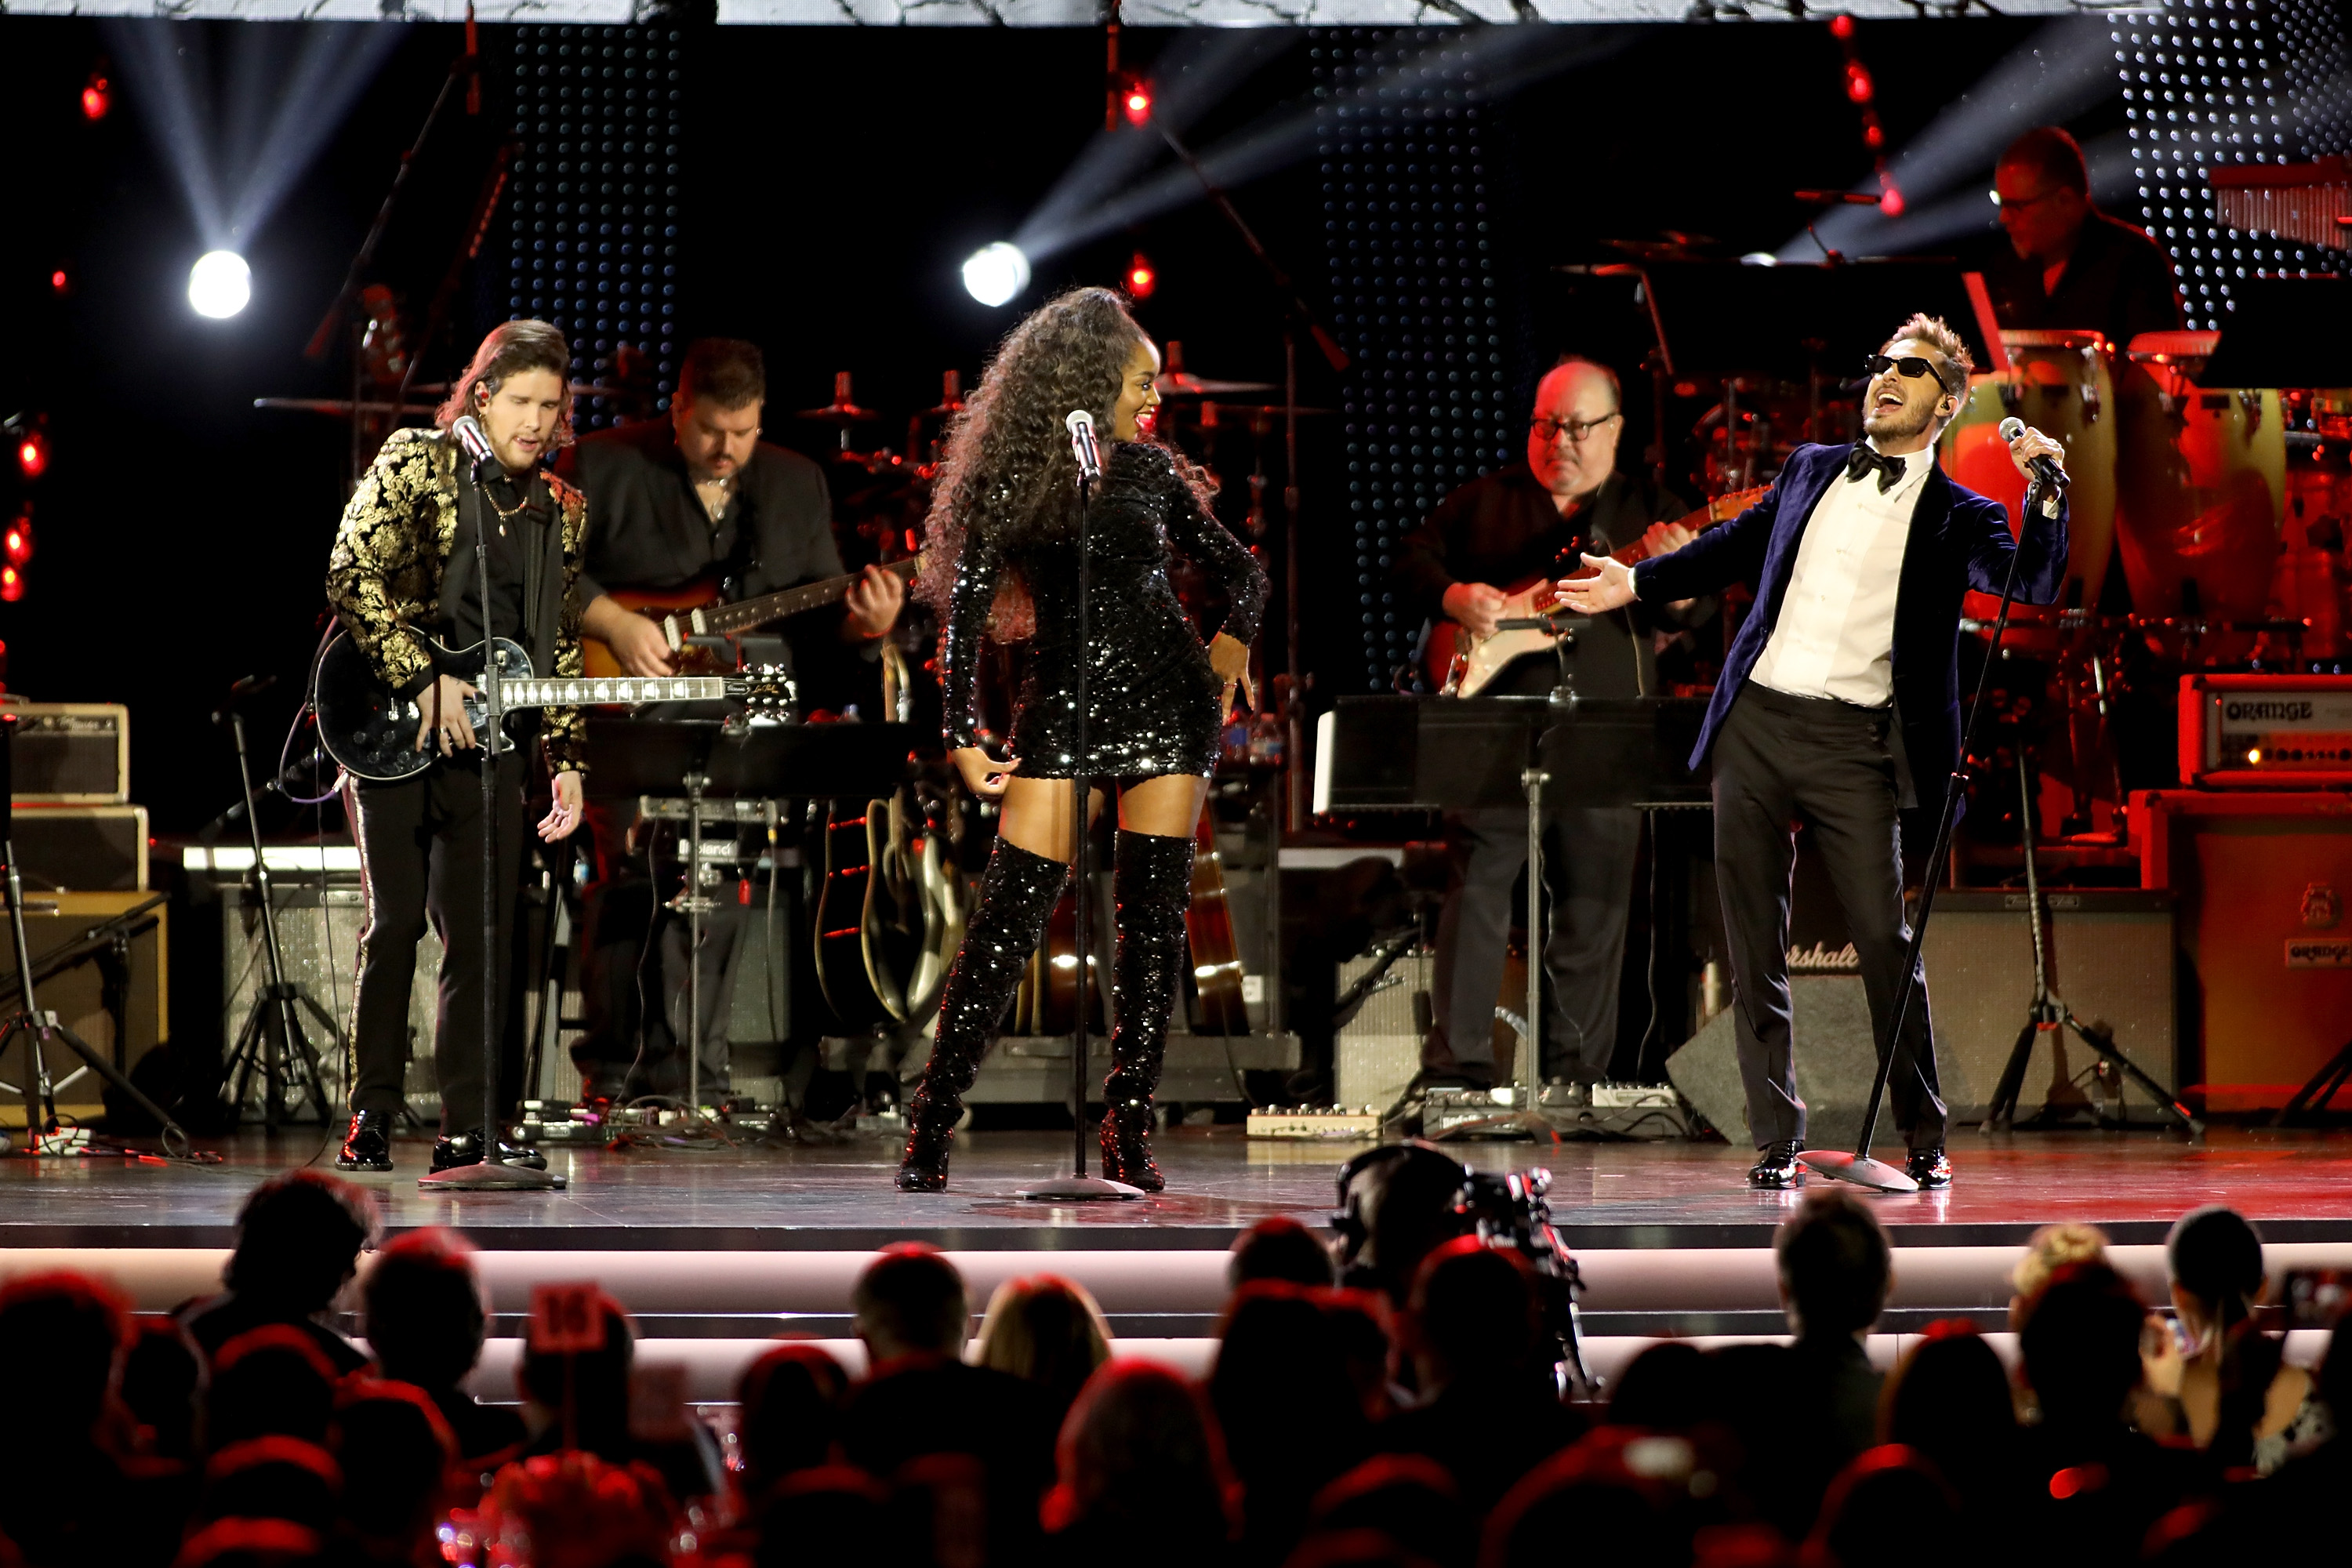 the-latin-recording-academys-2018-person-of-the-year-gala-honoring-mana-red-carpet